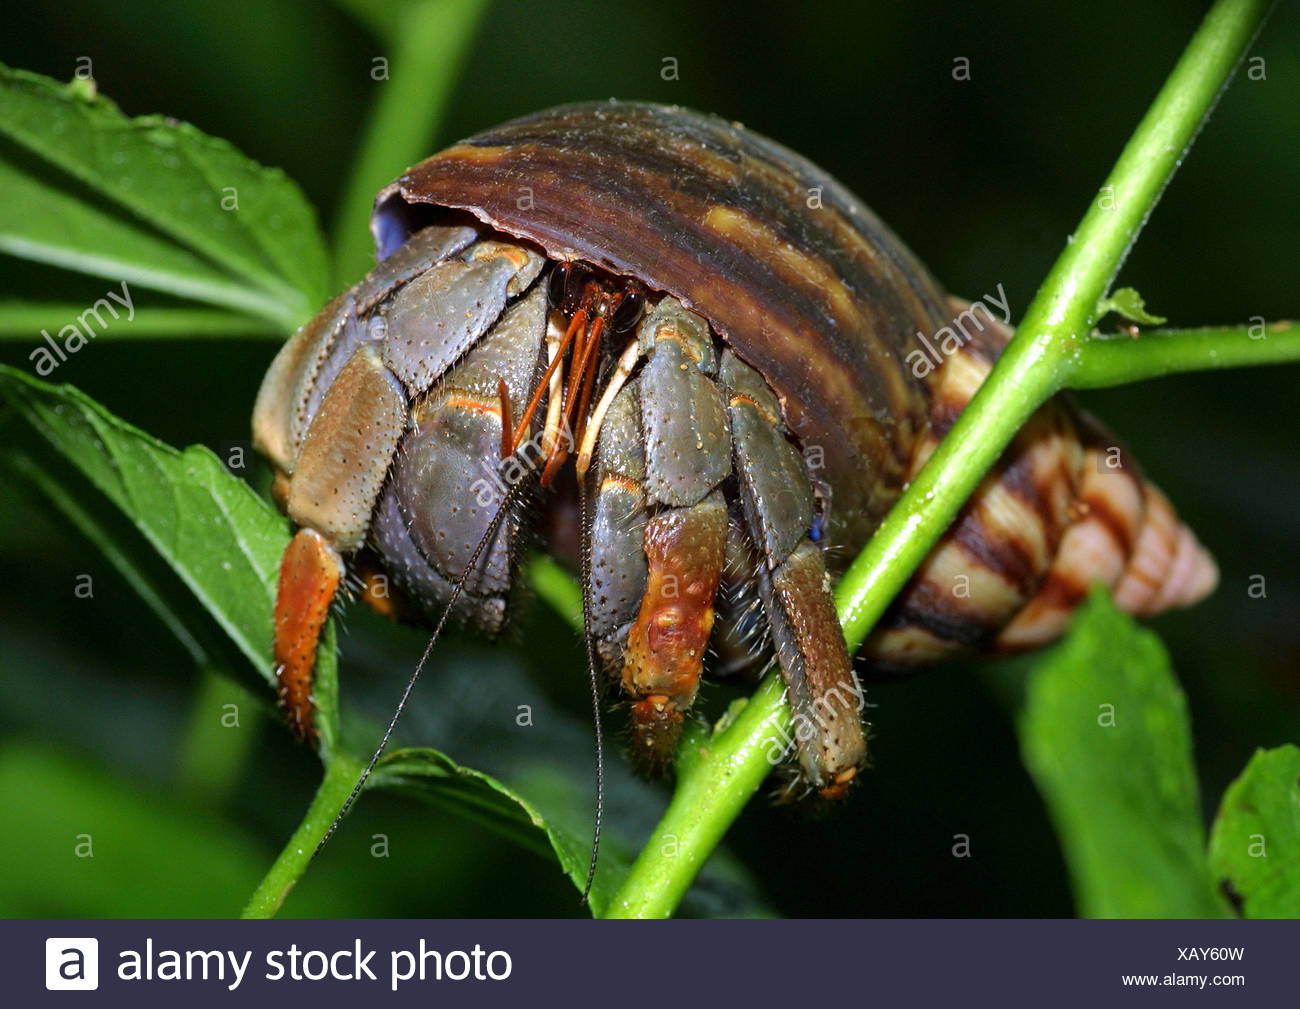 large hermit crab, common hermit crab, soldier crab, soldier hermit crab, Bernhard's hermit crab (Pagurus bernhardus, Eupagurus bernhardus), on a plant - Stock Image